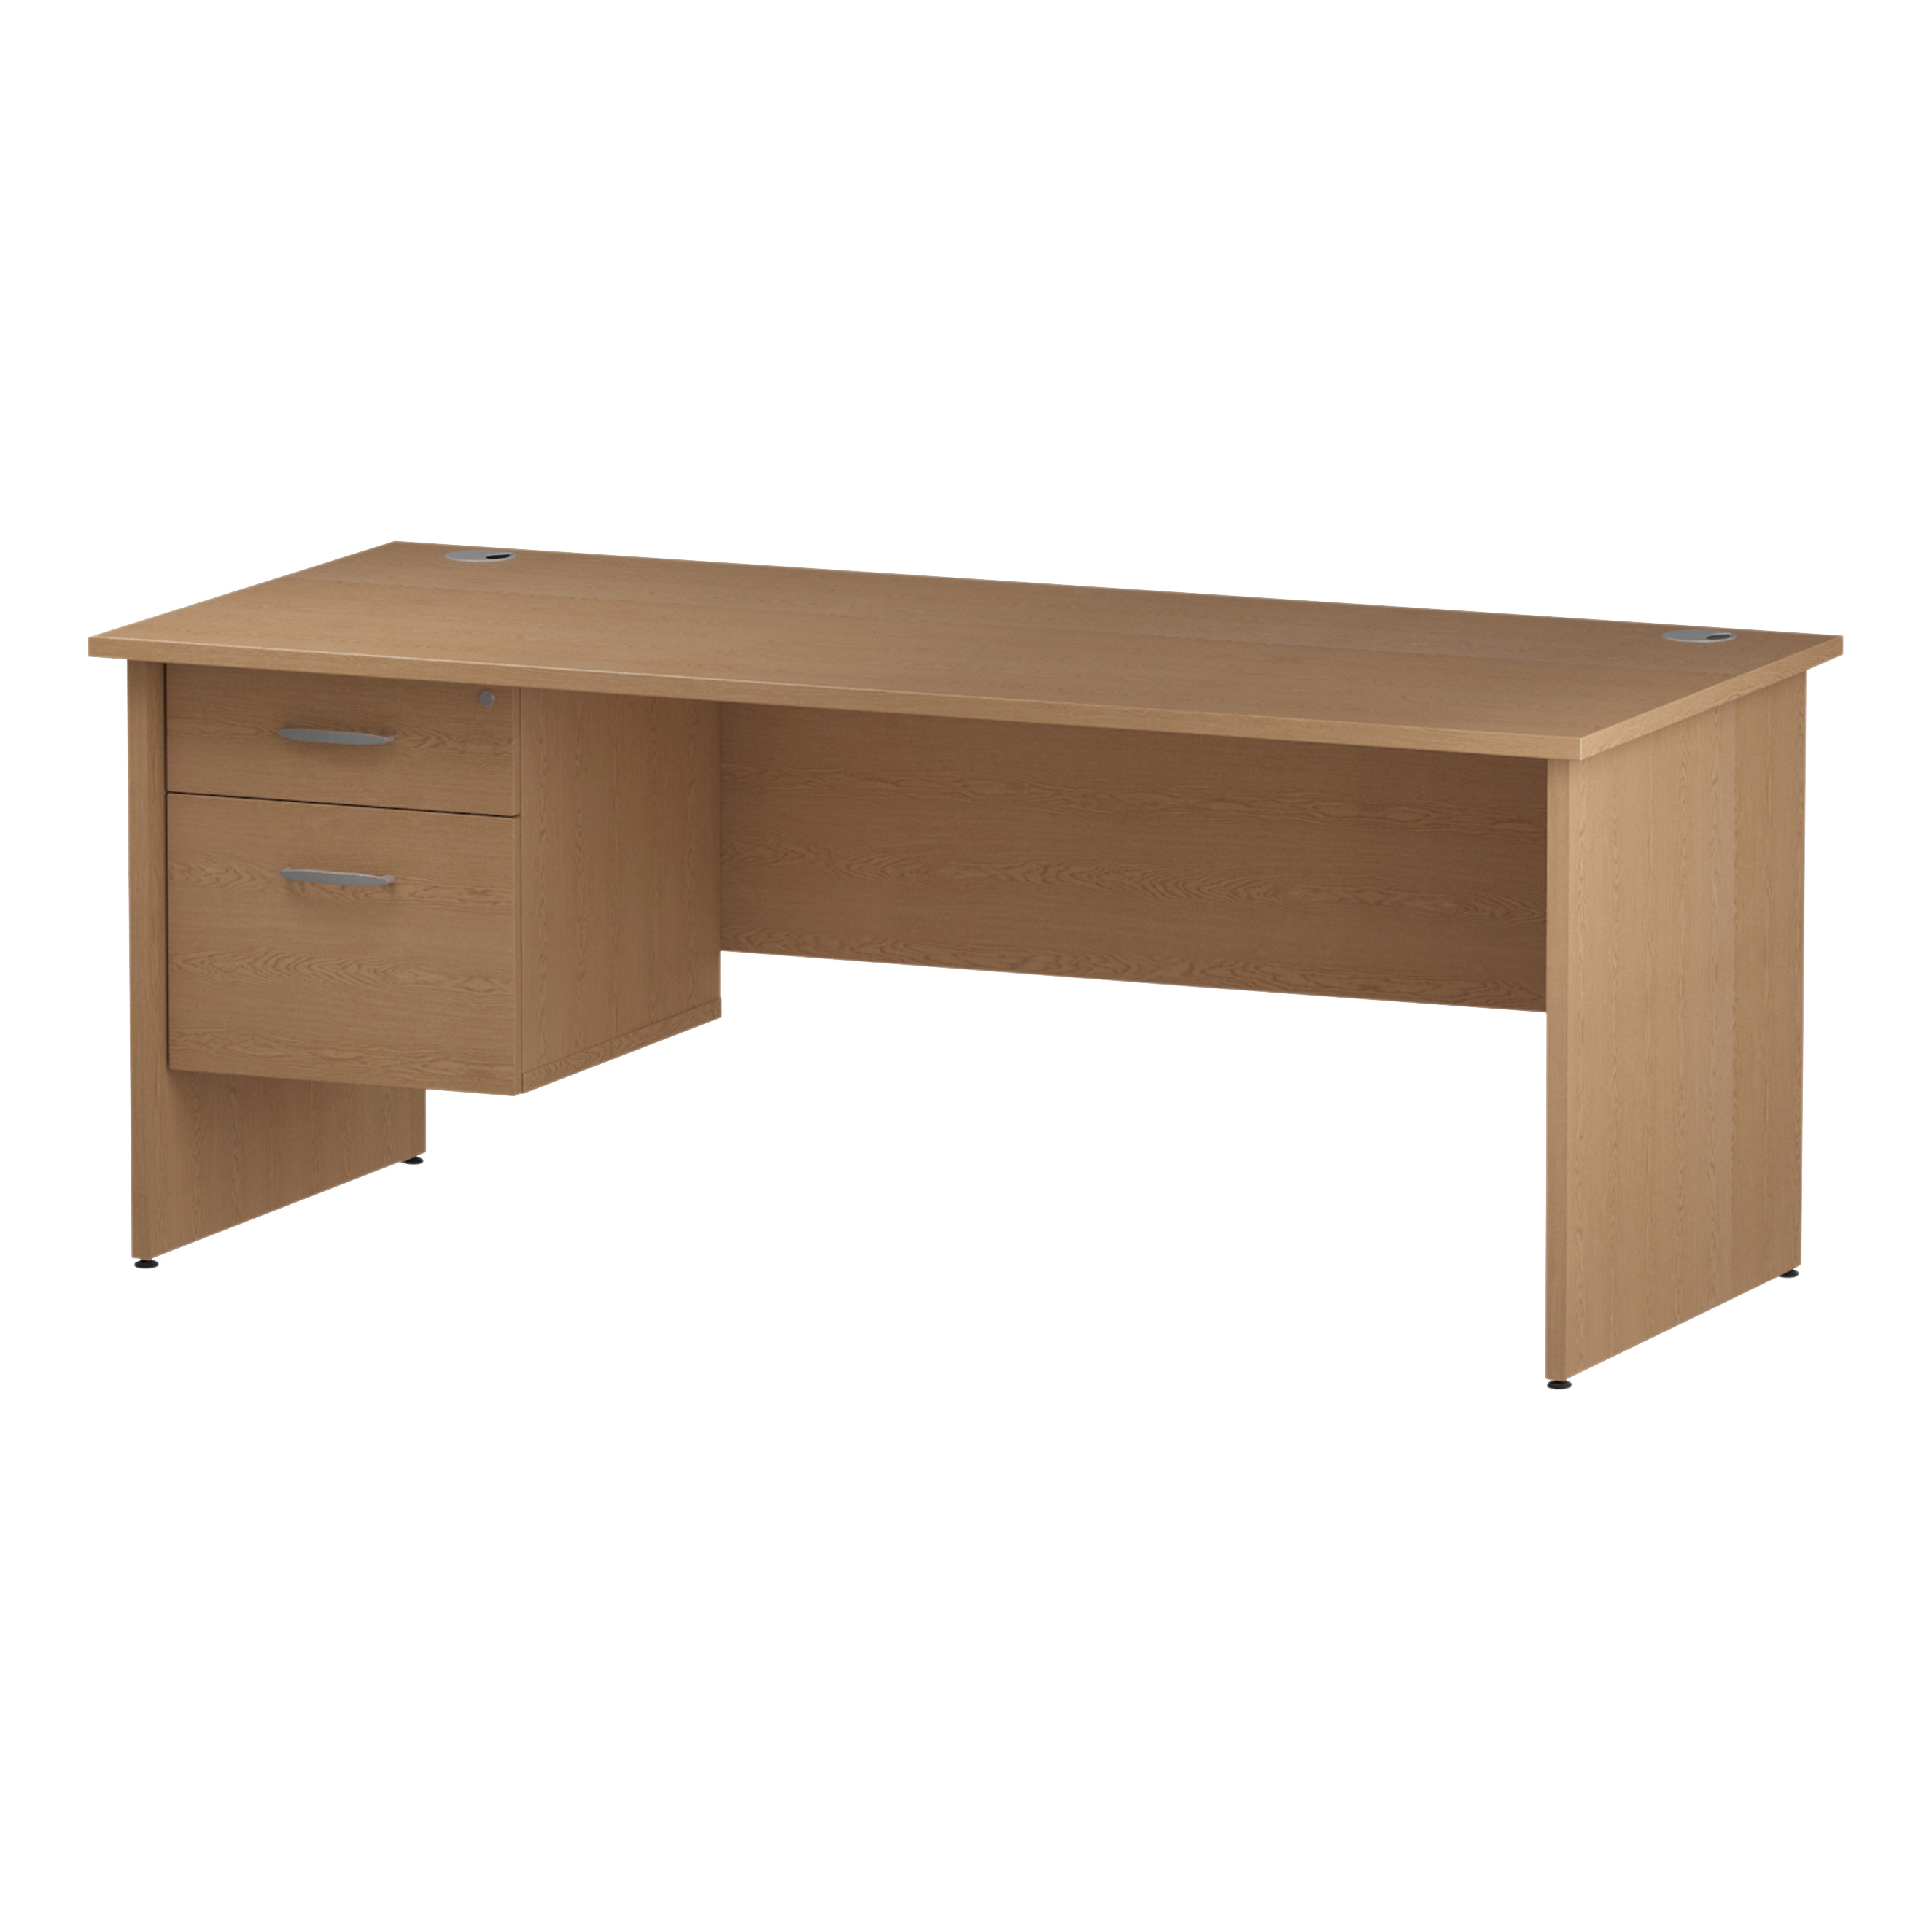 Trexus Rectangular Desk Panel End Leg 1800x800mm Fixed Pedestal 2 Drawers Oak Ref I002705